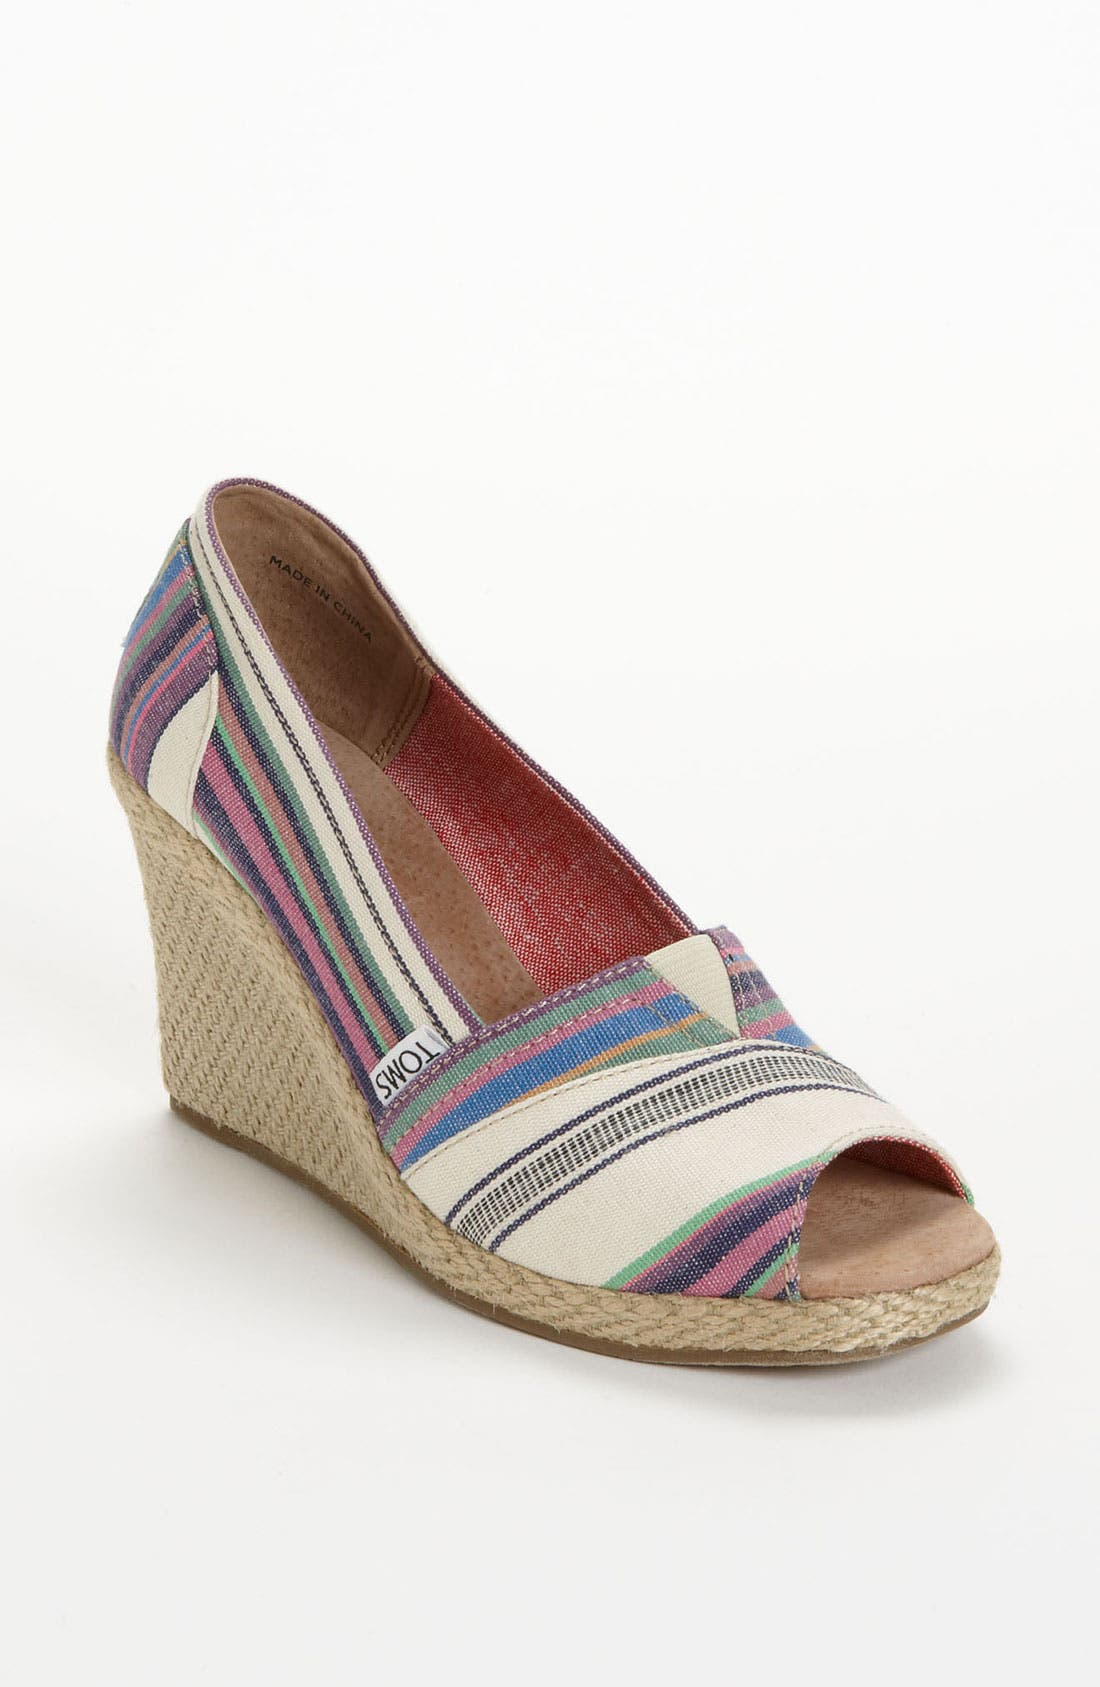 Alternate Image 1 Selected - TOMS 'Village Stripe' Wedge